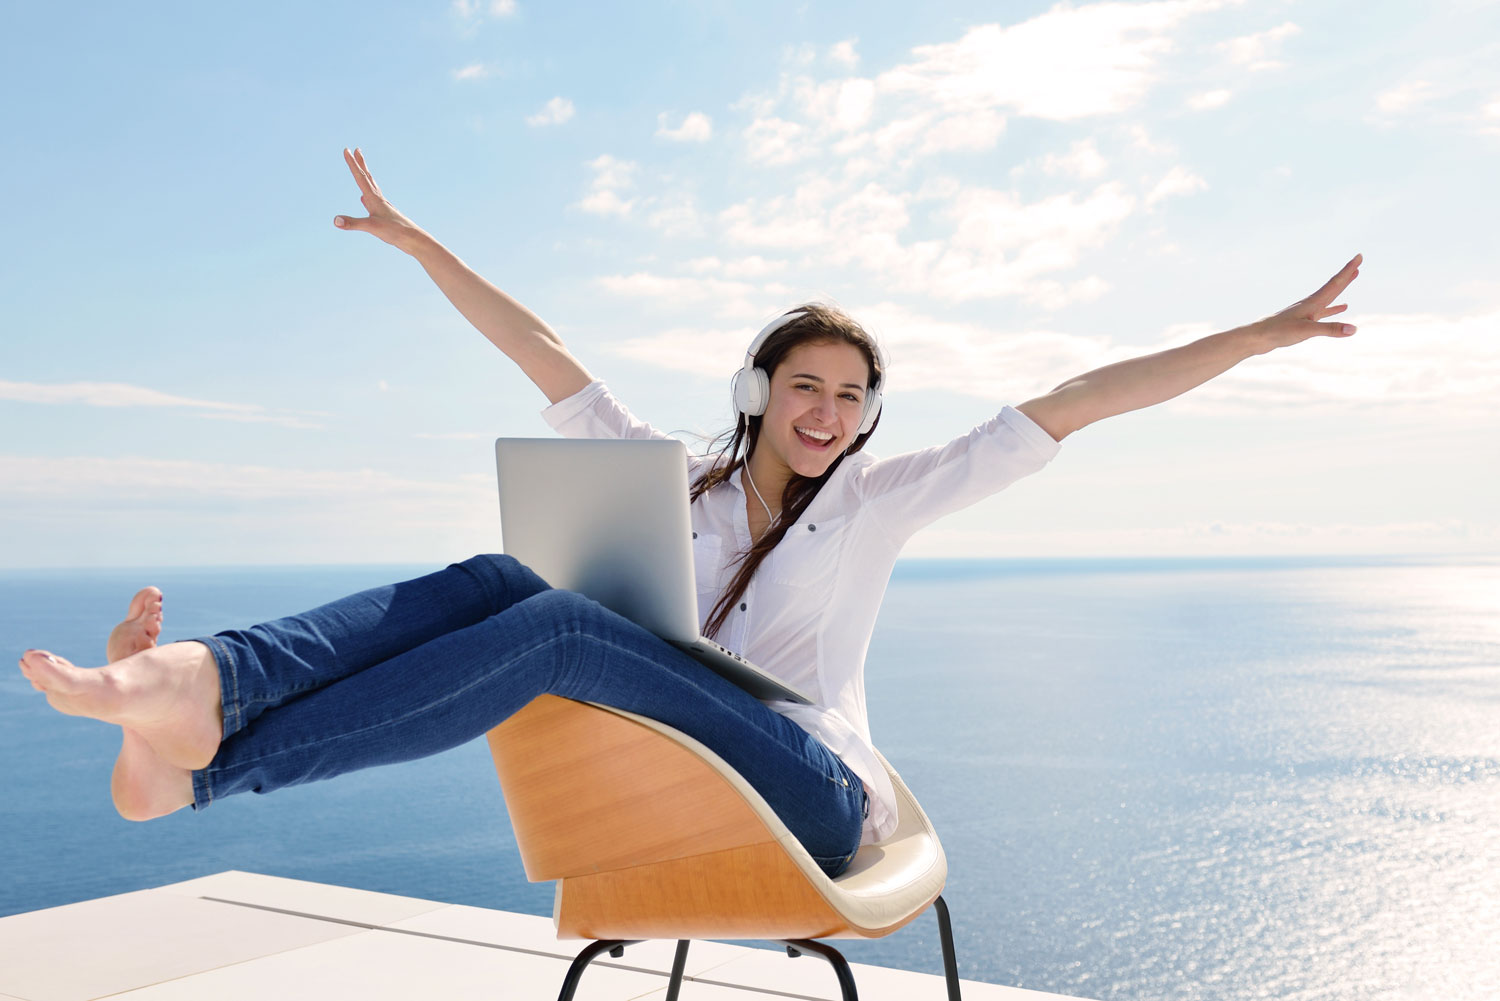 How to motivate yourself while learning online?